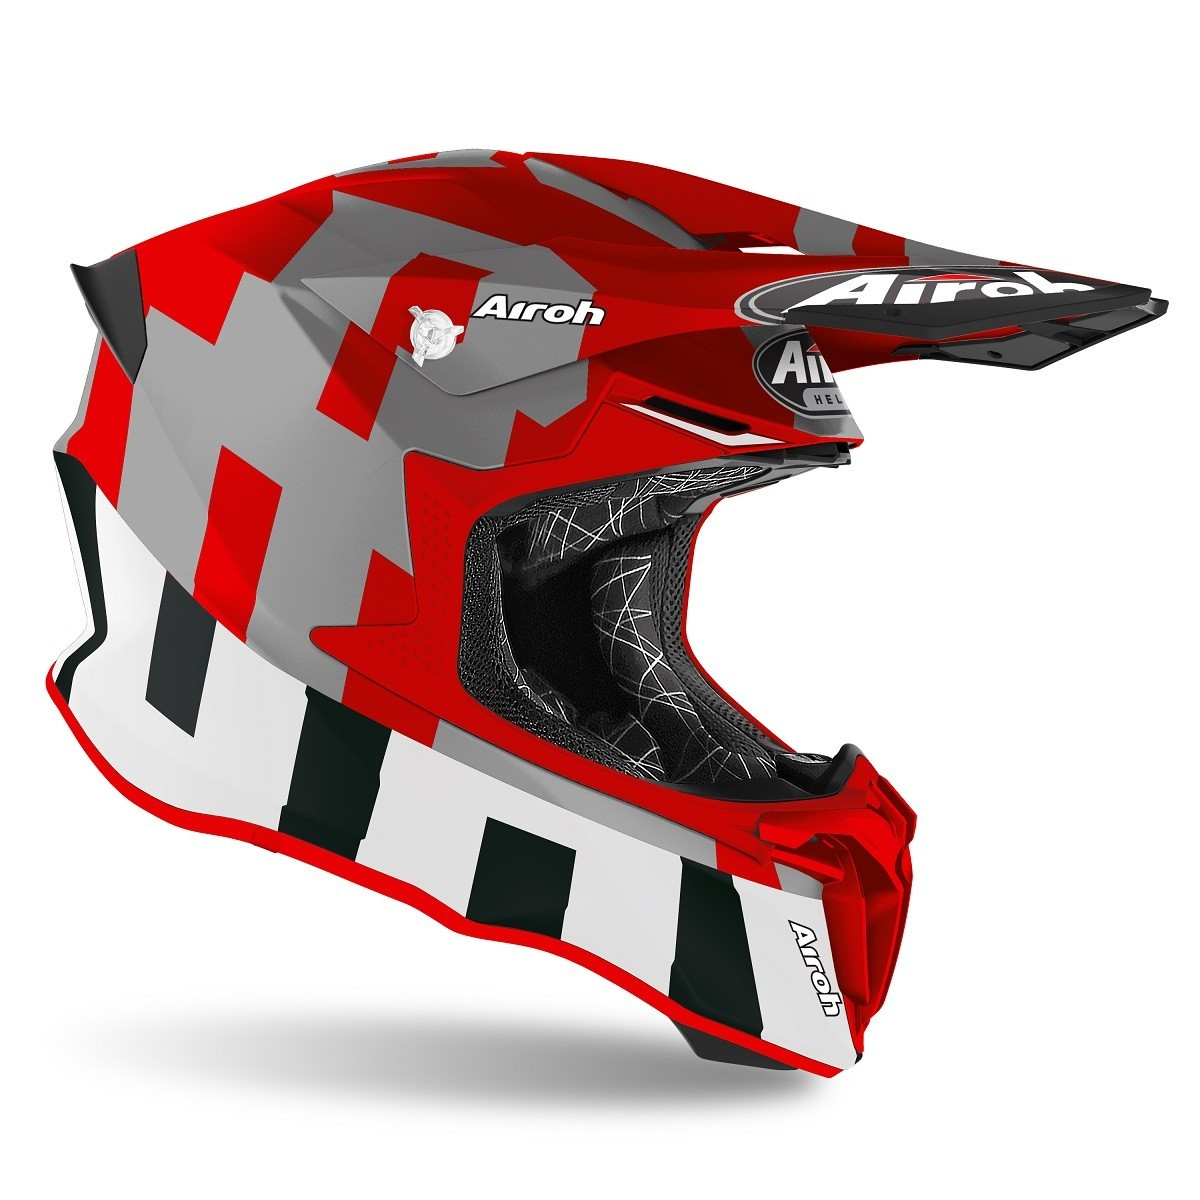 Foto2 - Capacete Airoh Twist 2.0 - Frame Red